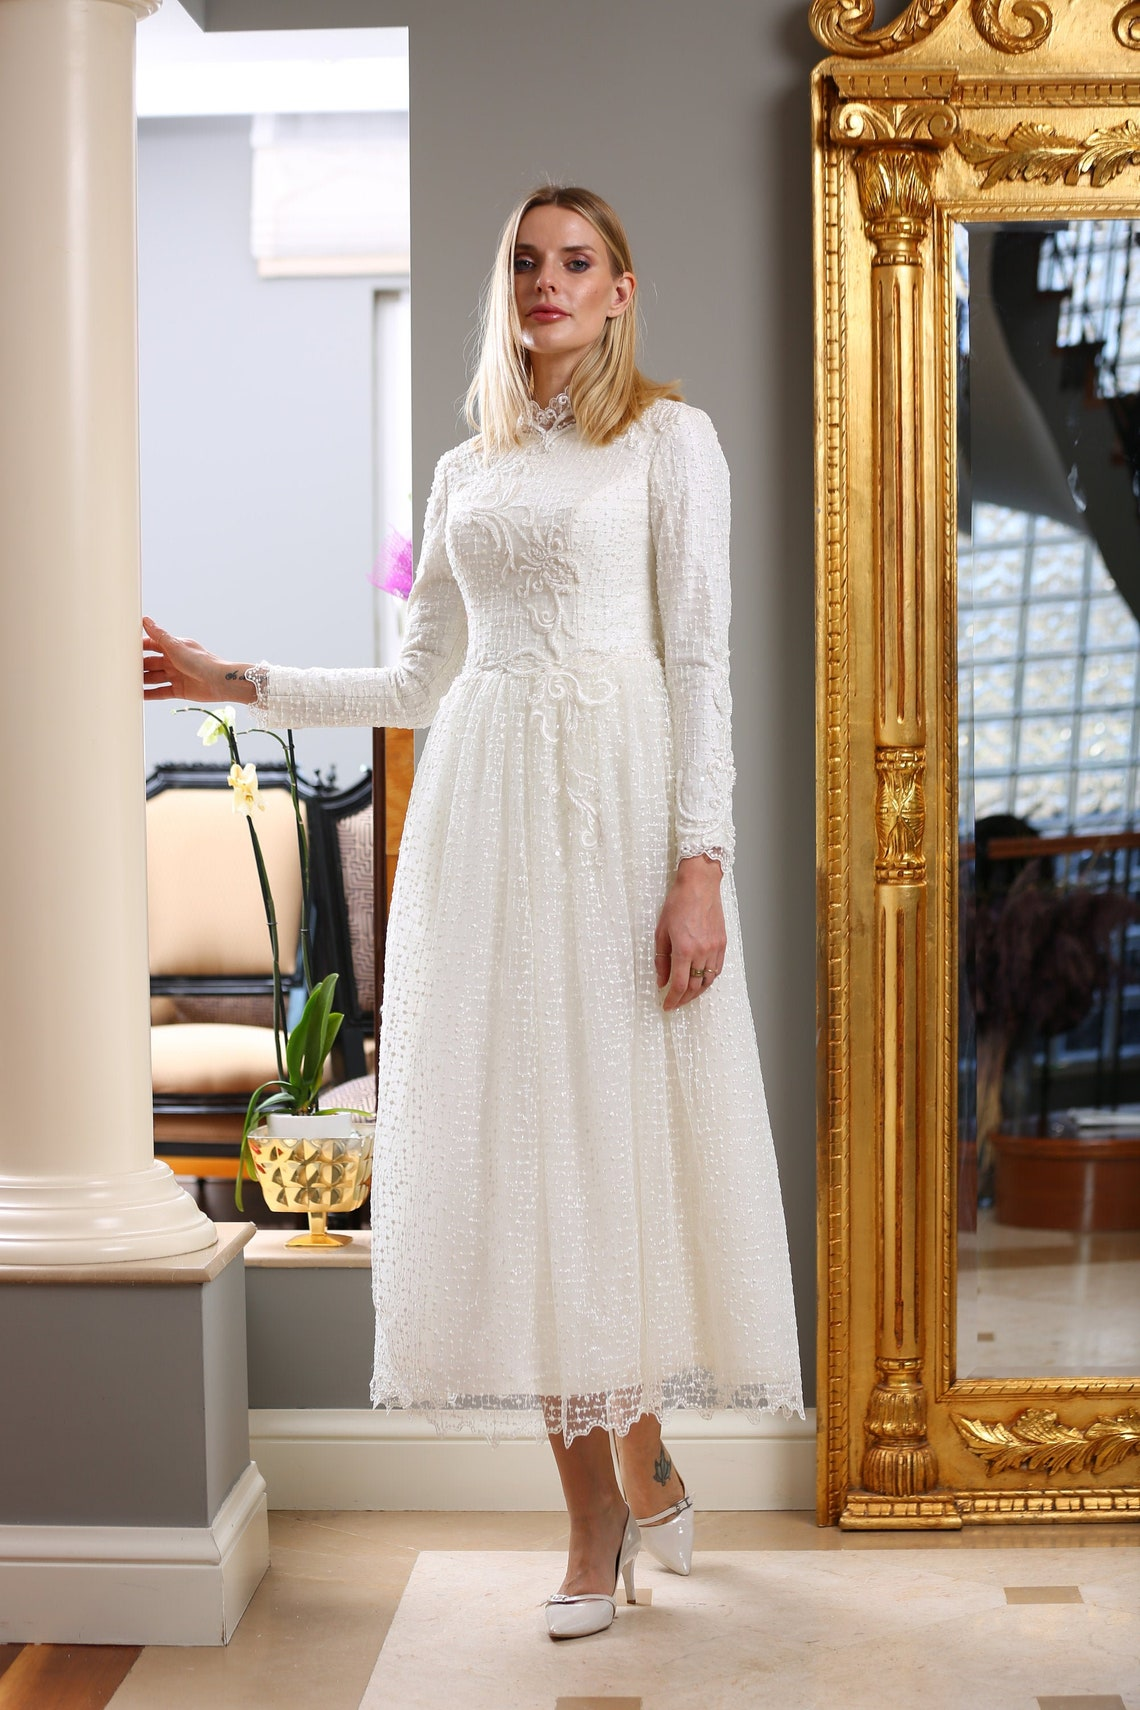 1940s Style Wedding Dresses | Classic Wedding Dresses Muslim Long Sleeves Wedding Dresses Evening Gown Nikah Hijab Bridesmaid Engagement Henna High Neck Lace Bridal Gowns $539.92 AT vintagedancer.com